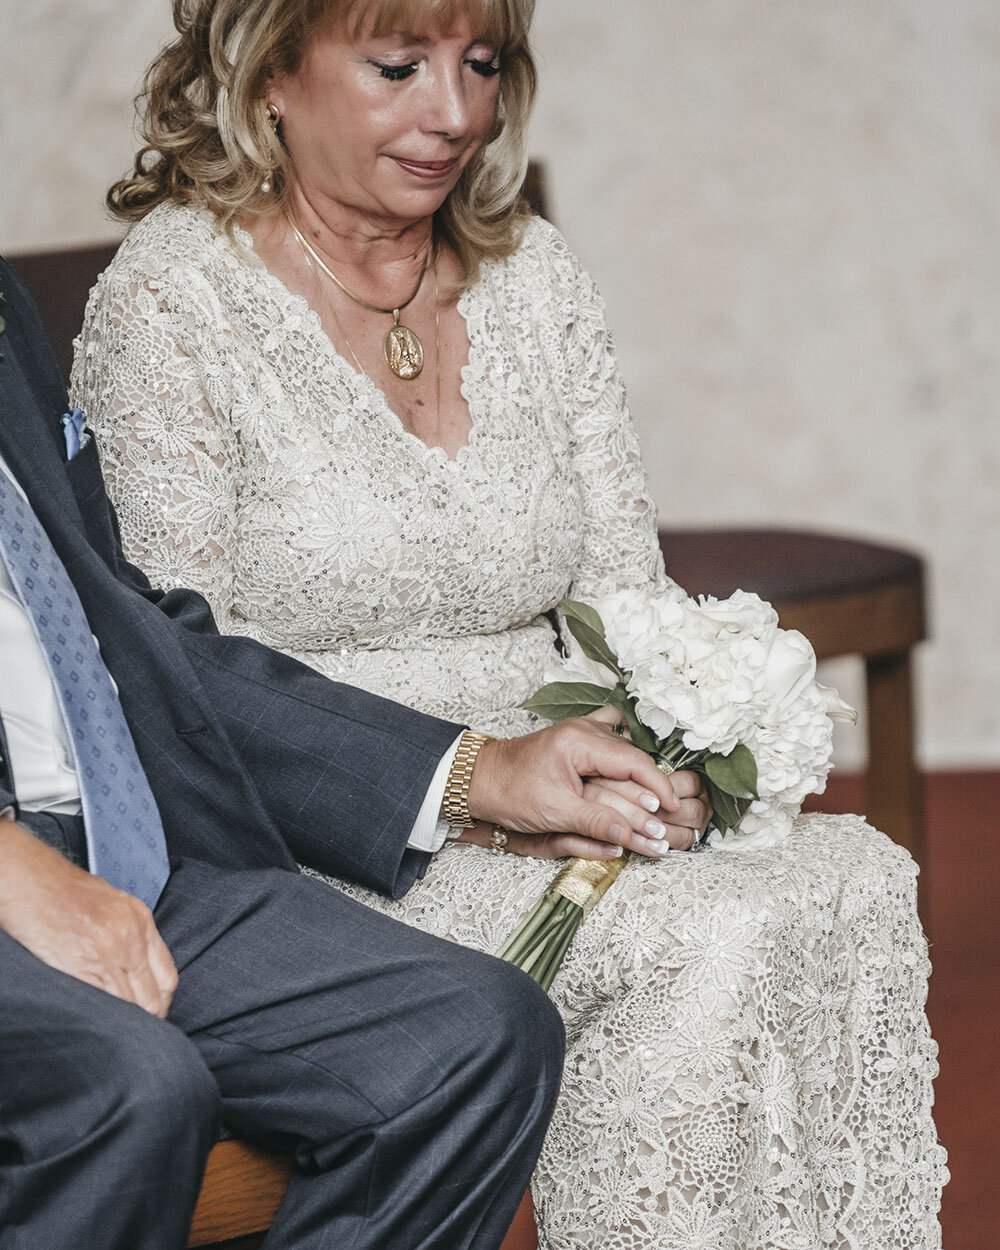 Palm Beach Gardens Floridawedding photography older couple - 13 copy.jpg